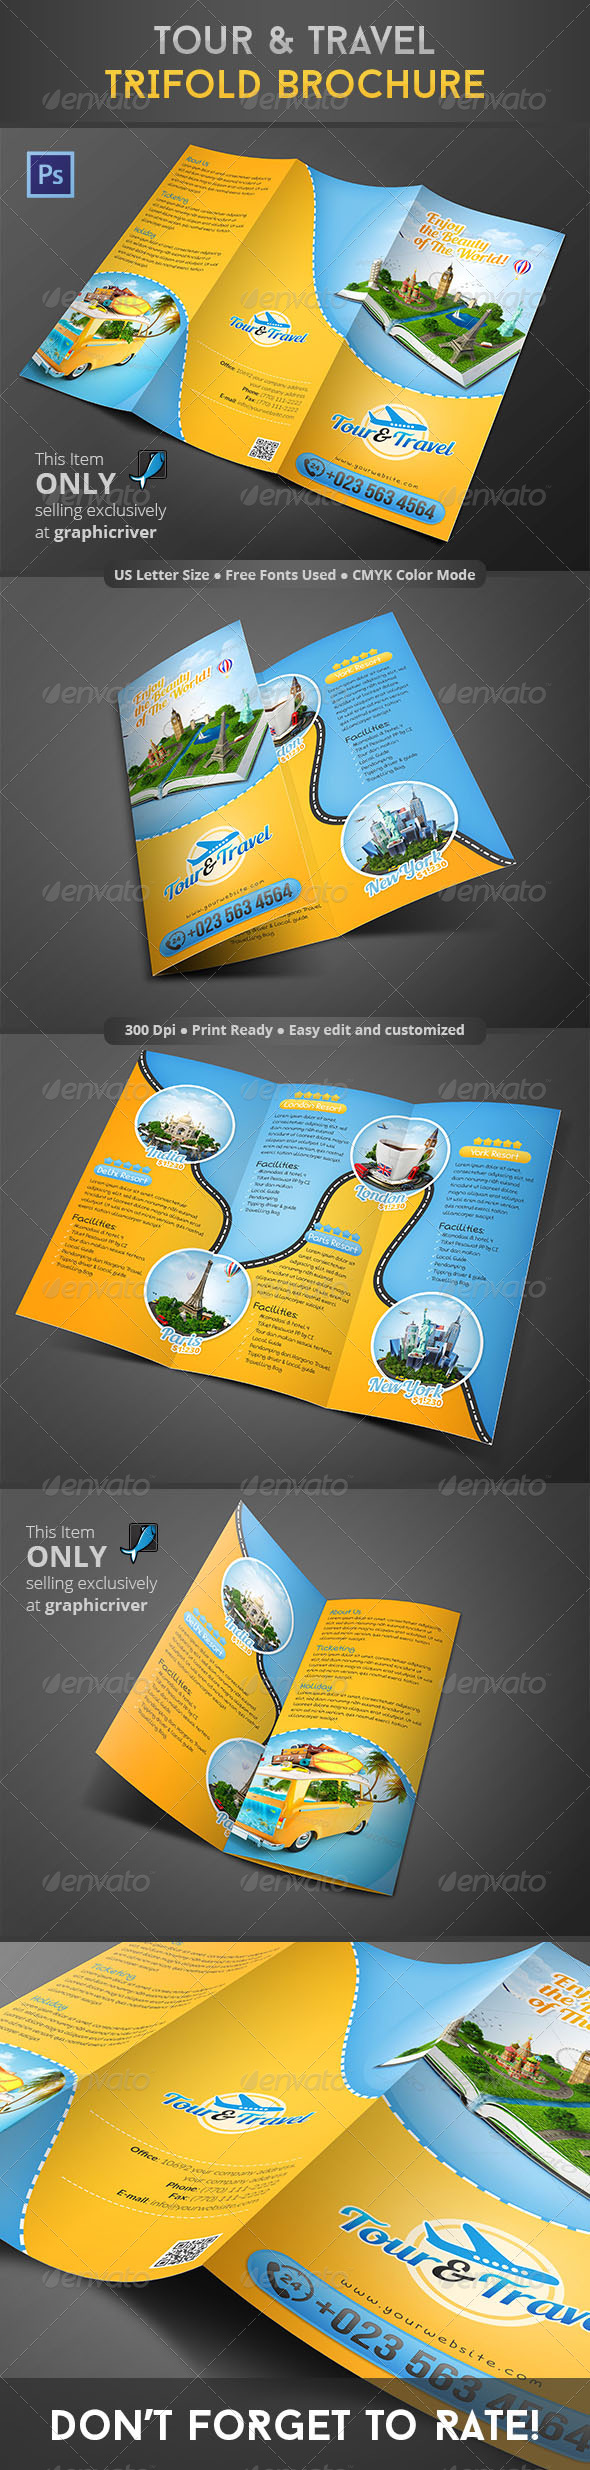 GraphicRiver Tour & Travel Trifold Brochure 8610213